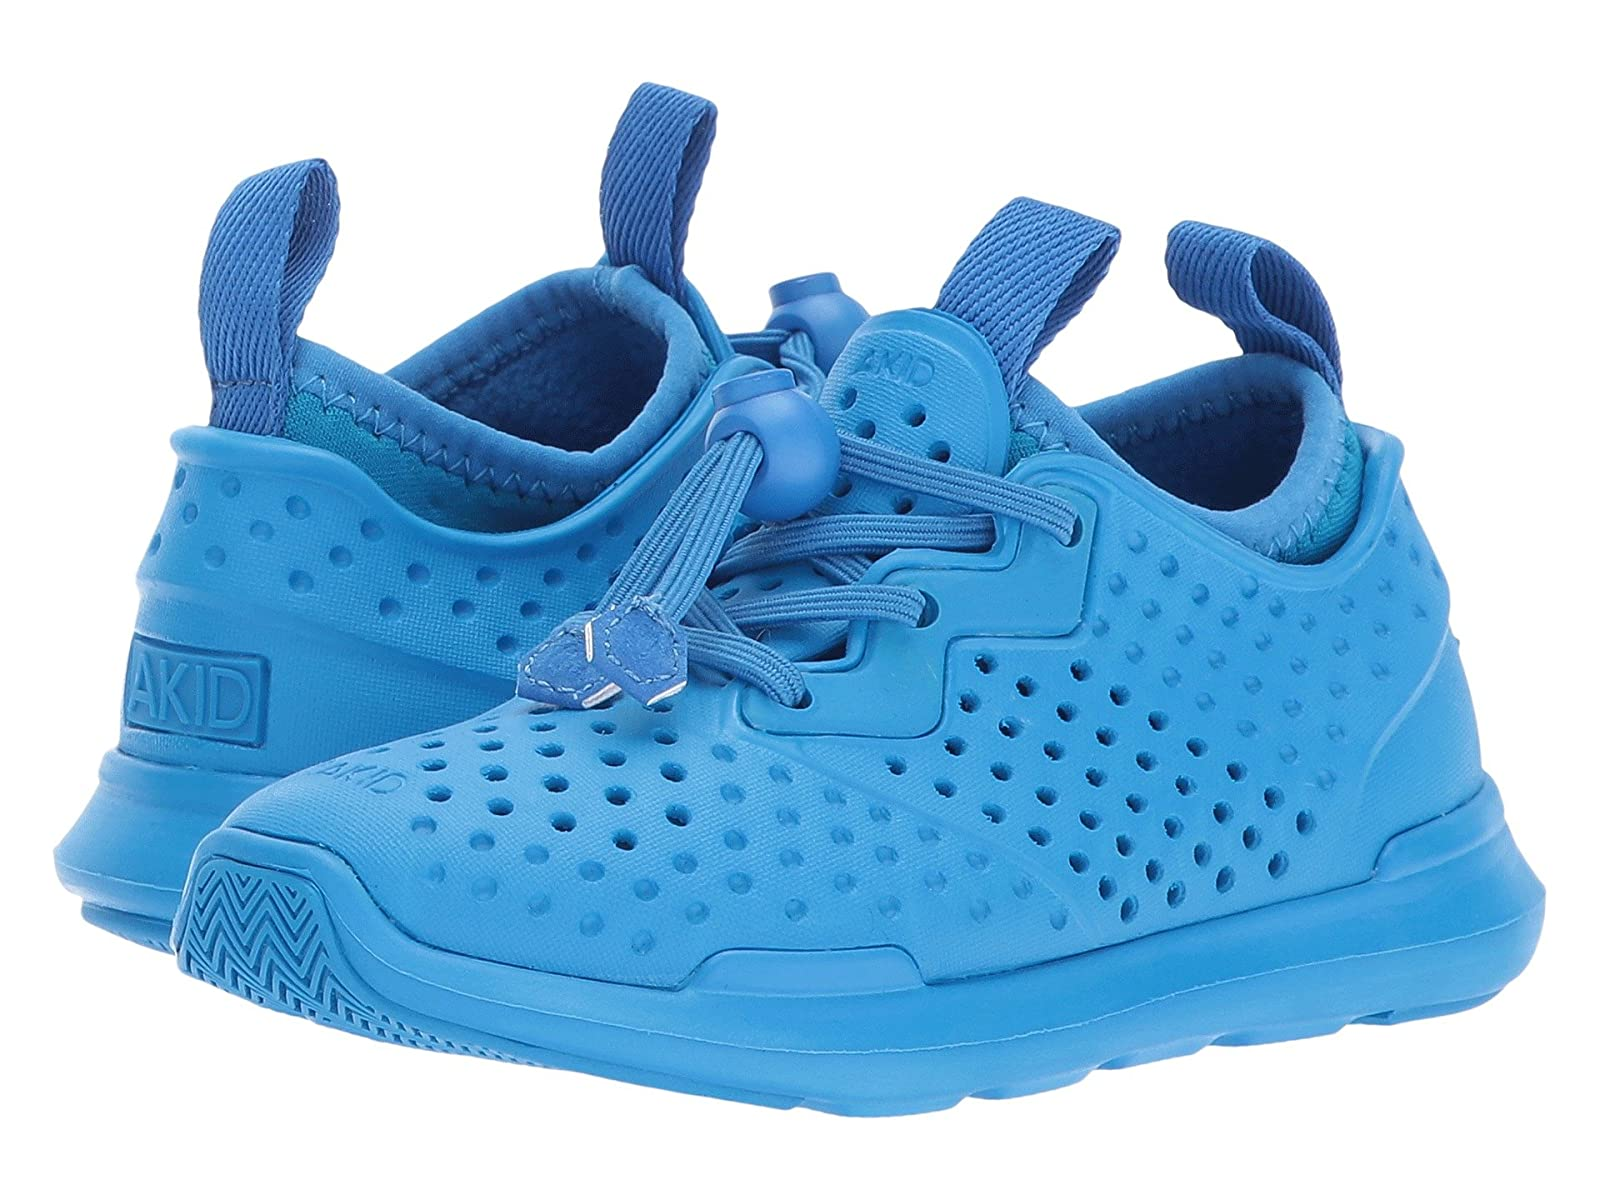 AKID Brand Chase (Toddler/Little Kid/Big Kid)Atmospheric grades have affordable shoes